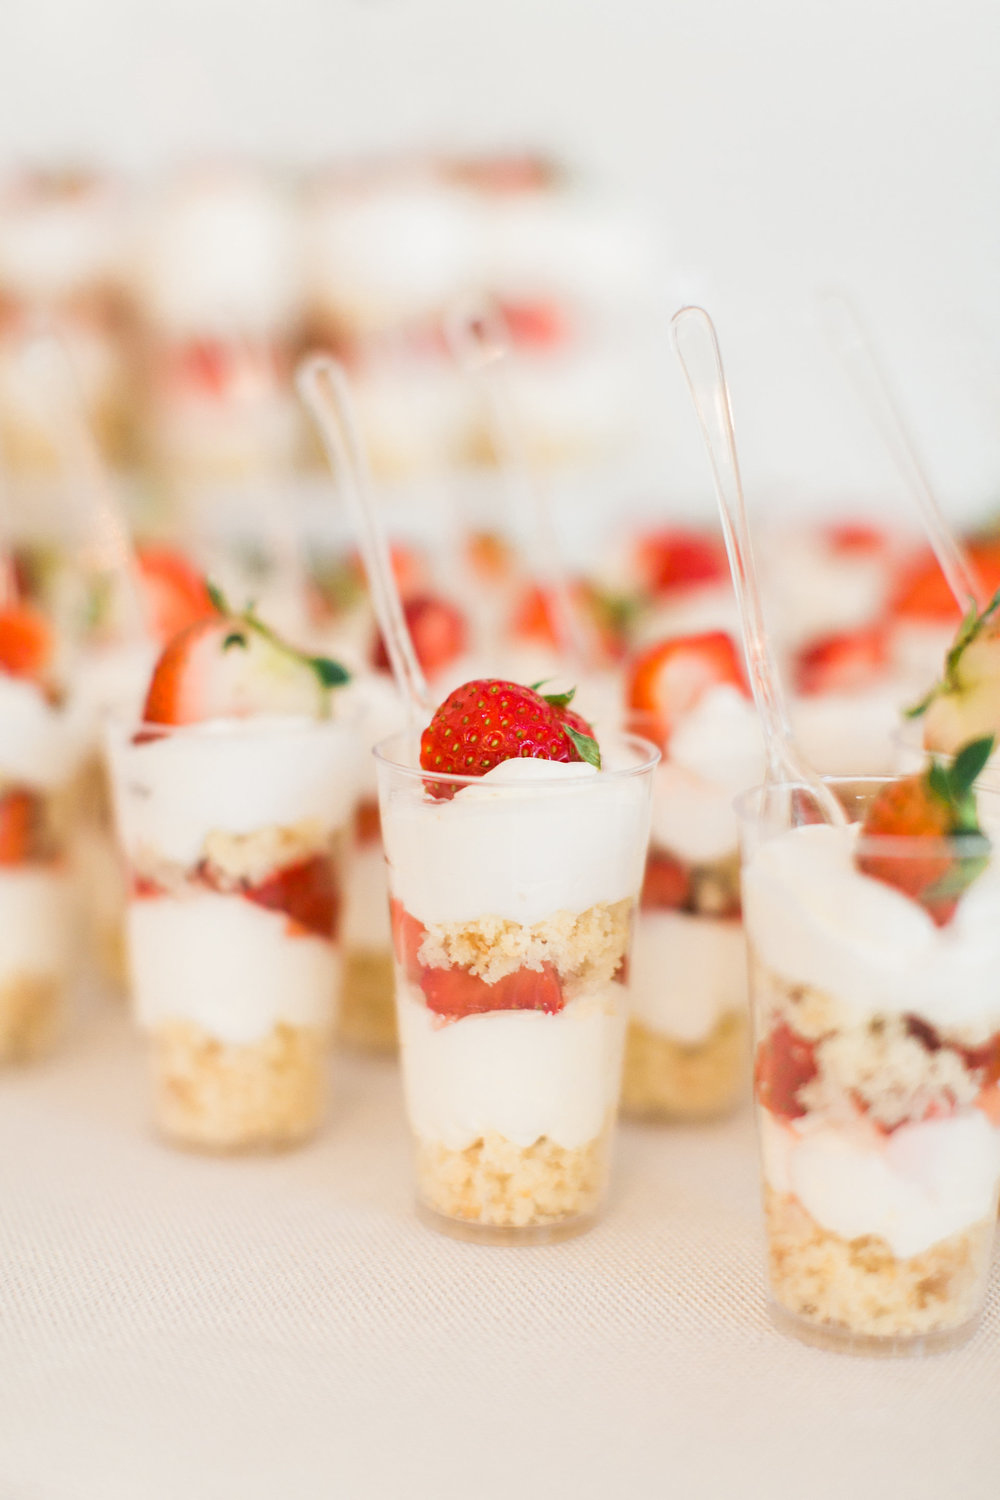 Raleigh_Dessert_Table_Sugar_Euphoria_SummerBash235.jpg